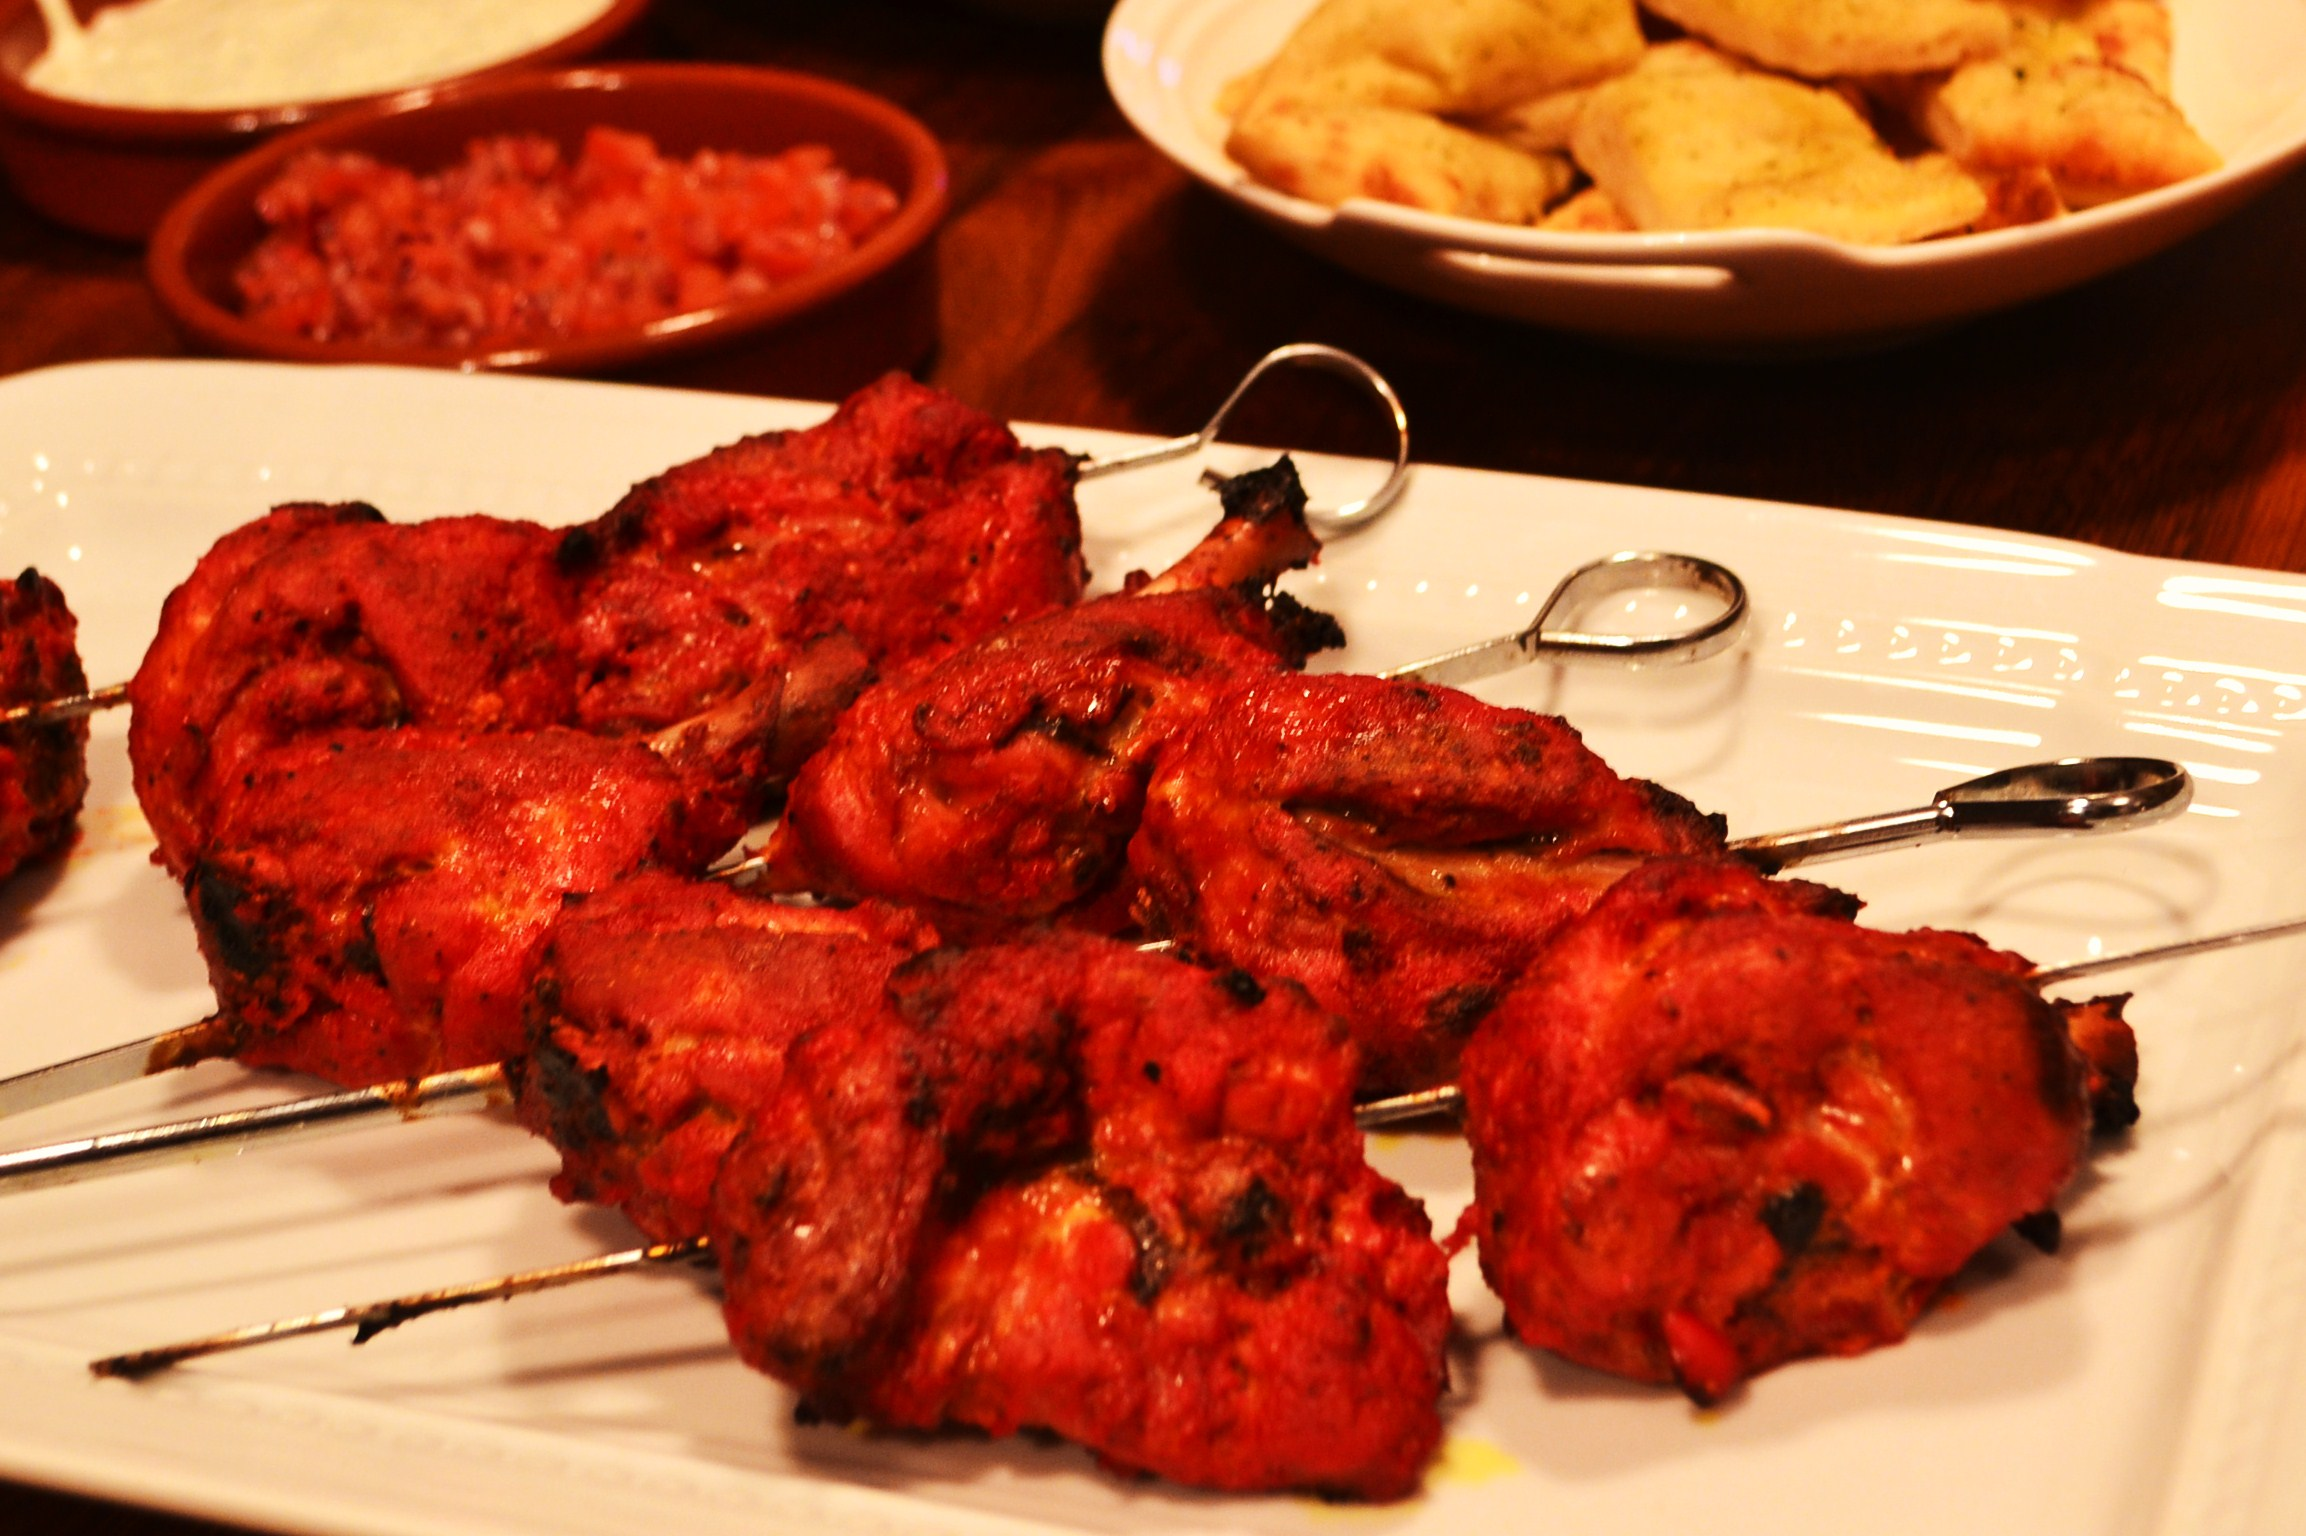 ... tandoori chicken tandoori chicken super easy tandoori chicken